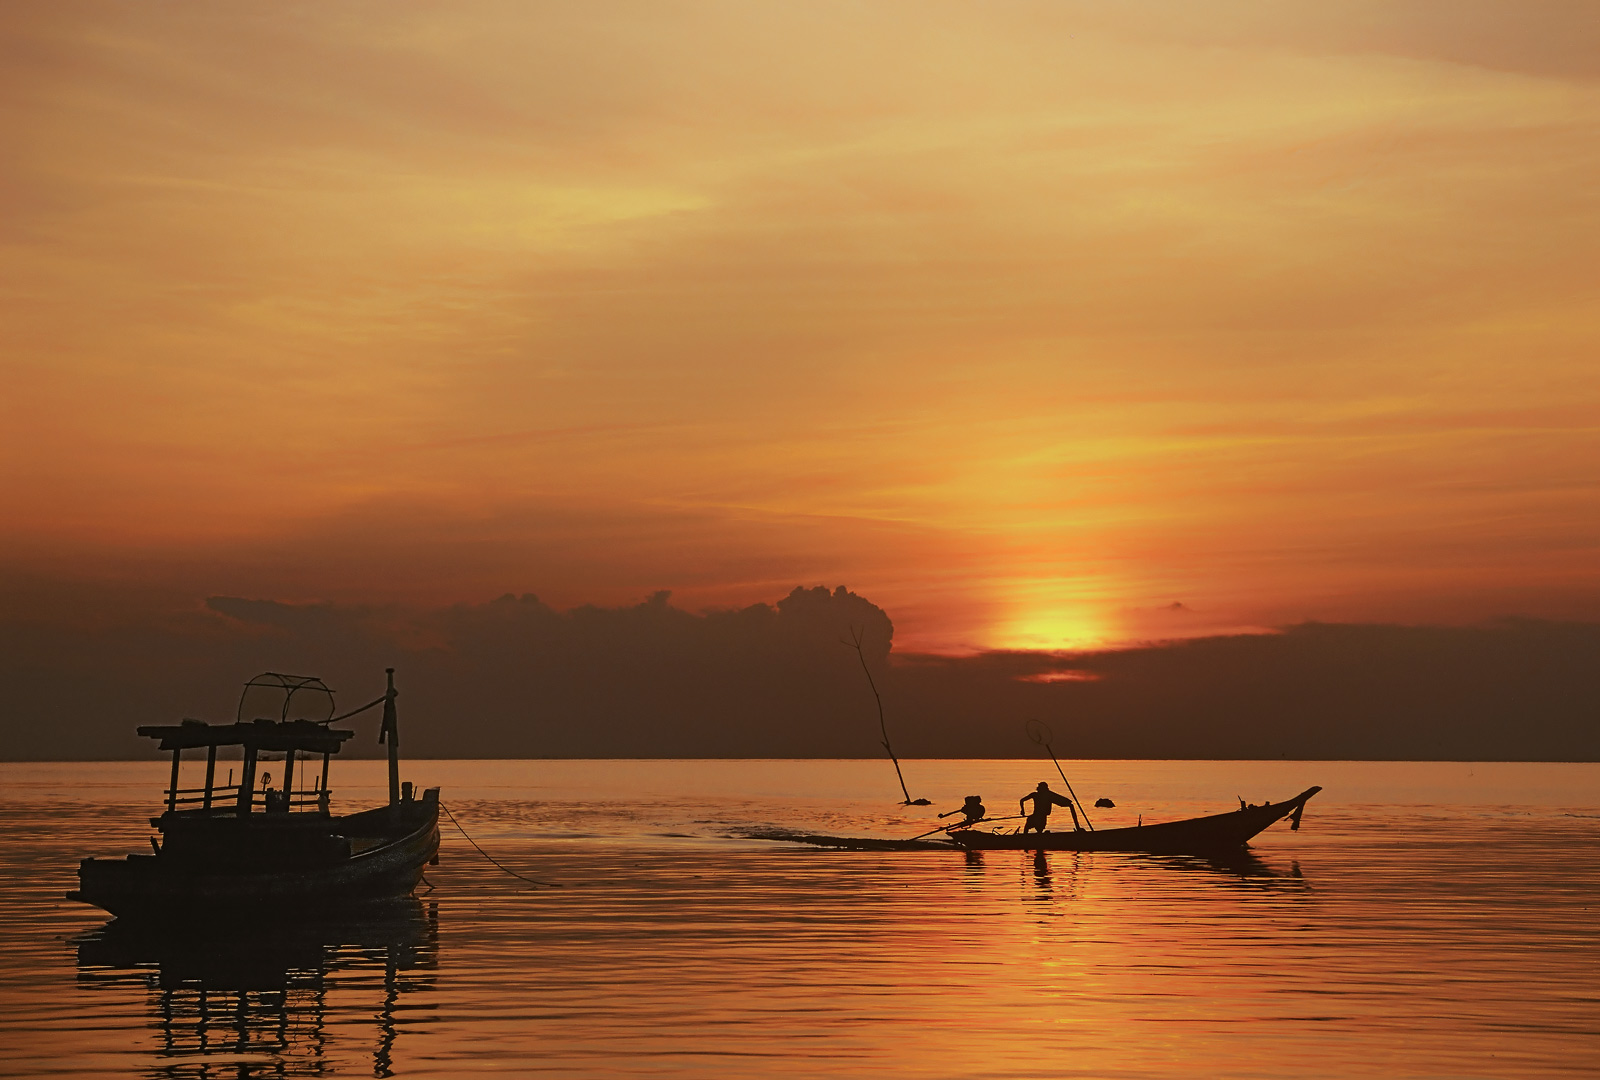 Days end in Thailand off Pra Ngan beach, Krabiand the fishermen race for home with their long prop boats. I timed...